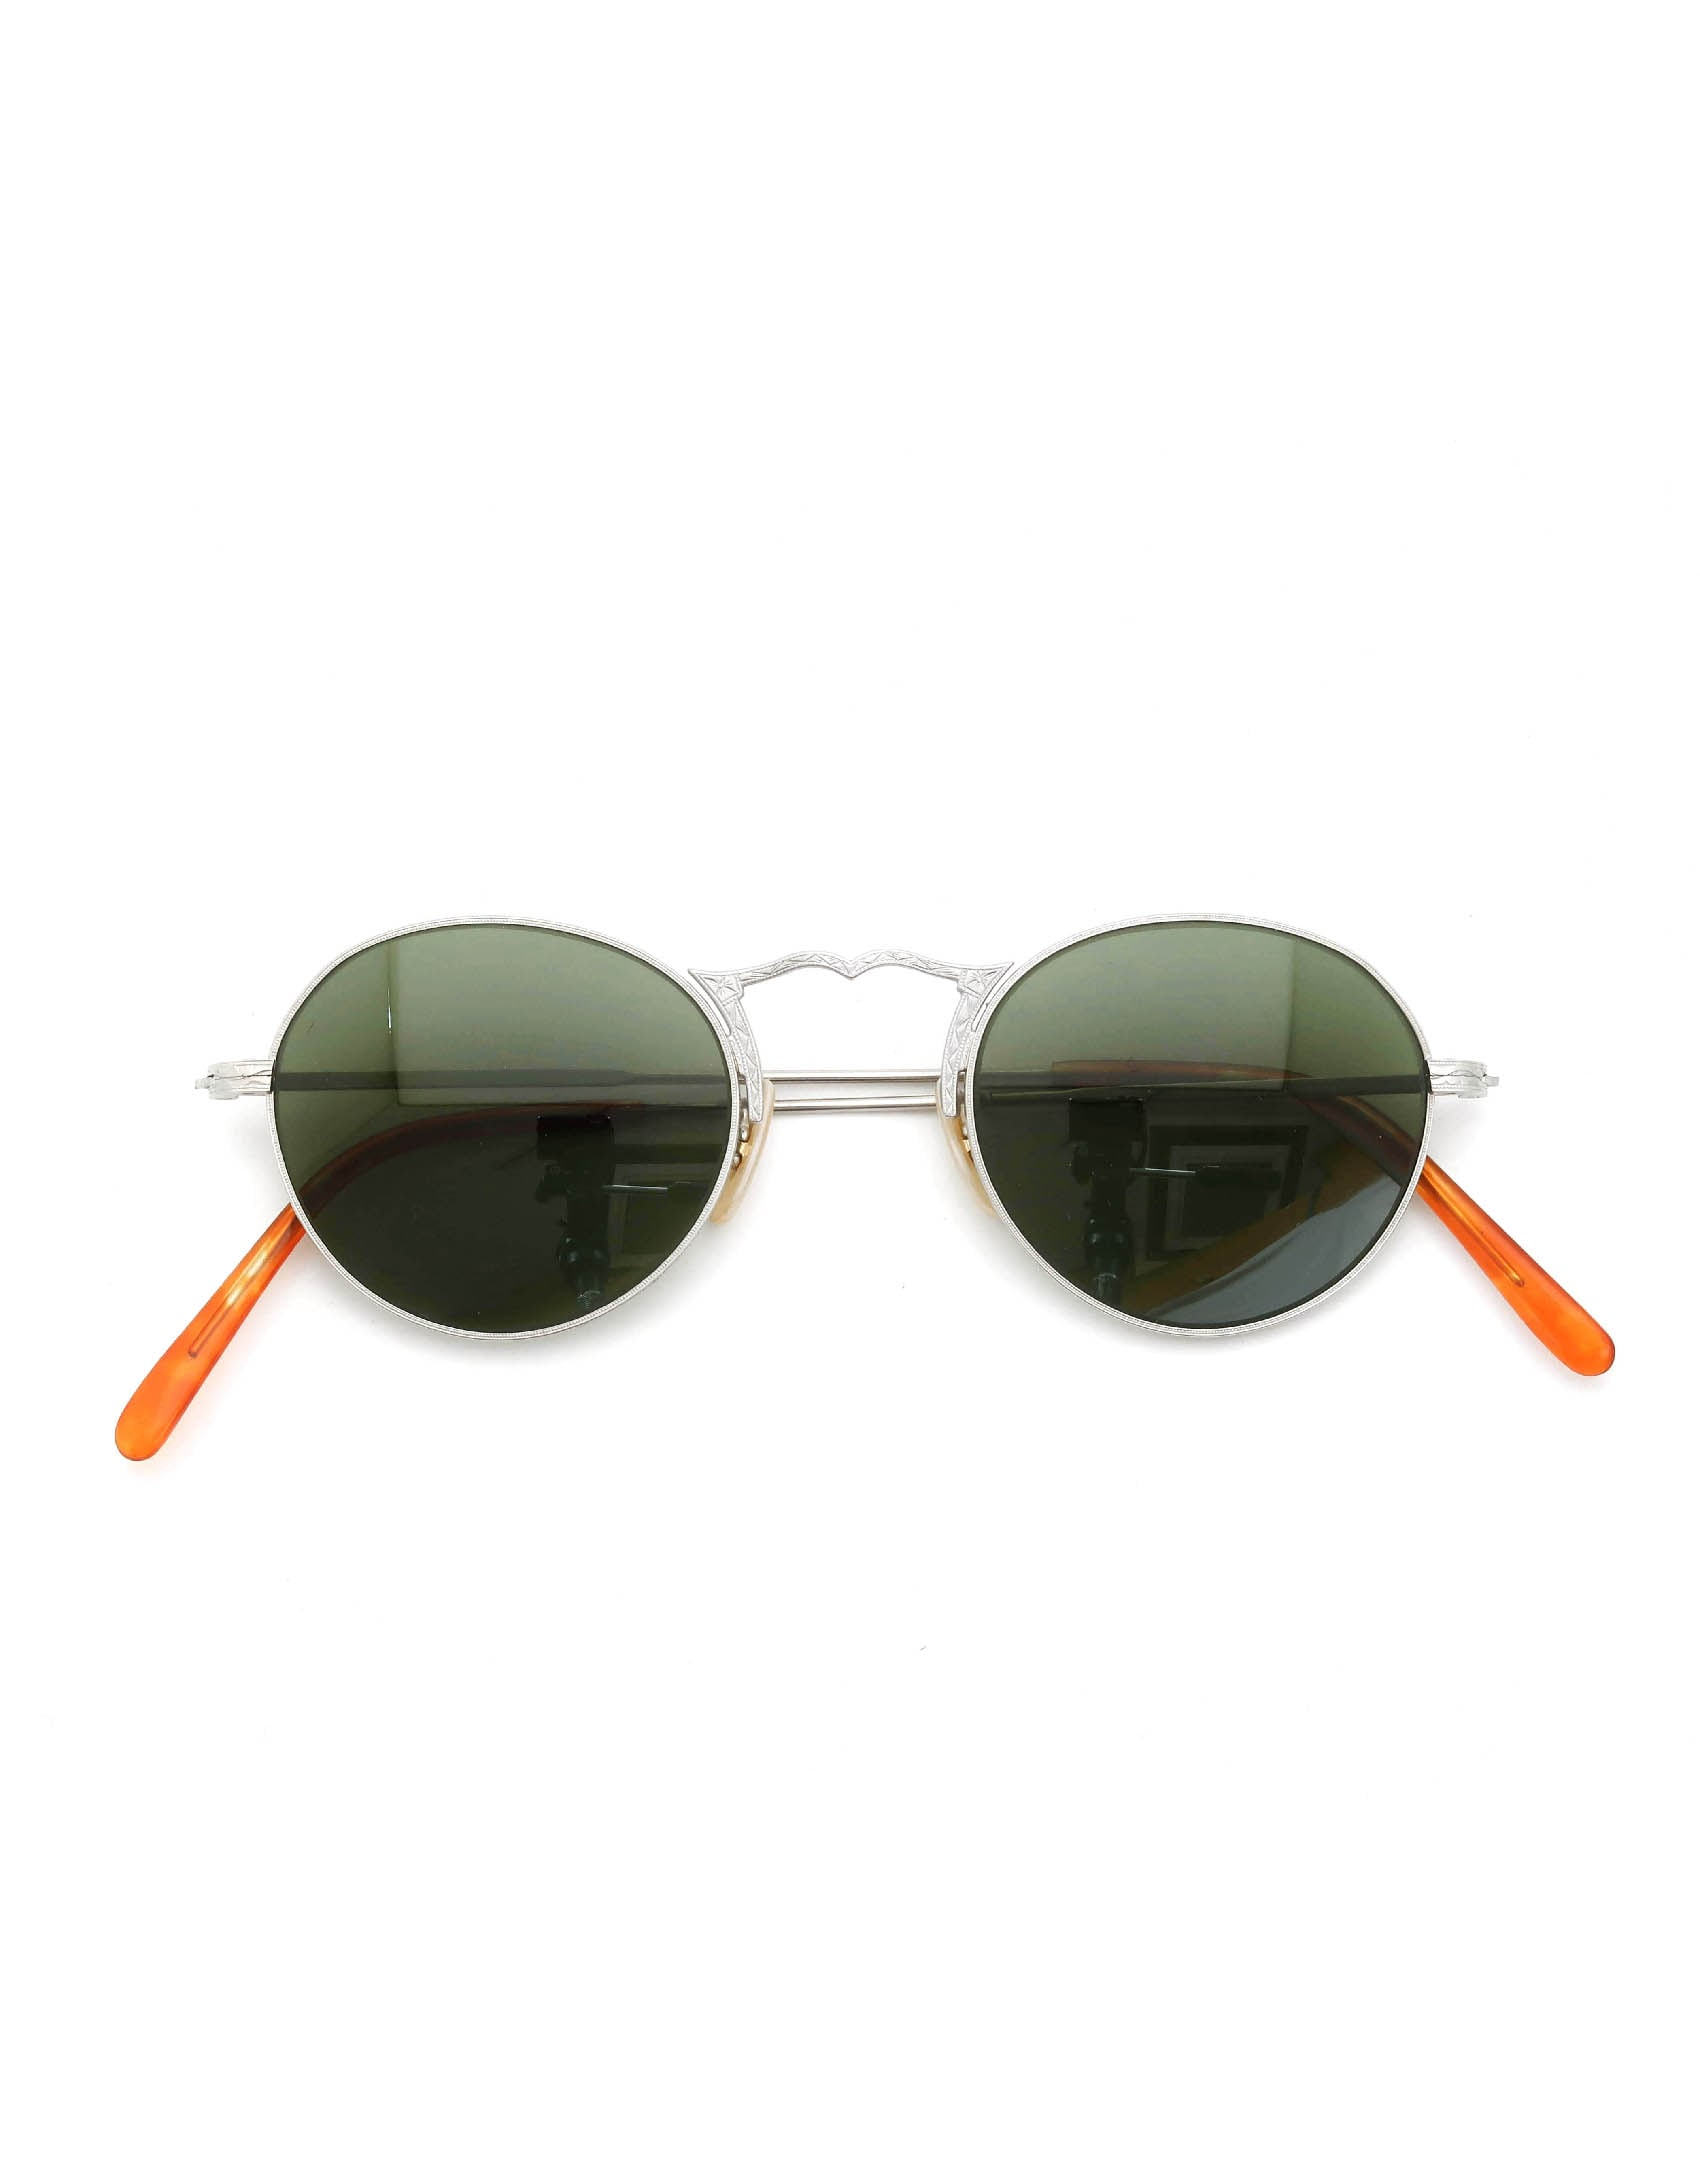 OLIVER PEOPLES vintage OP-7 MS SUN